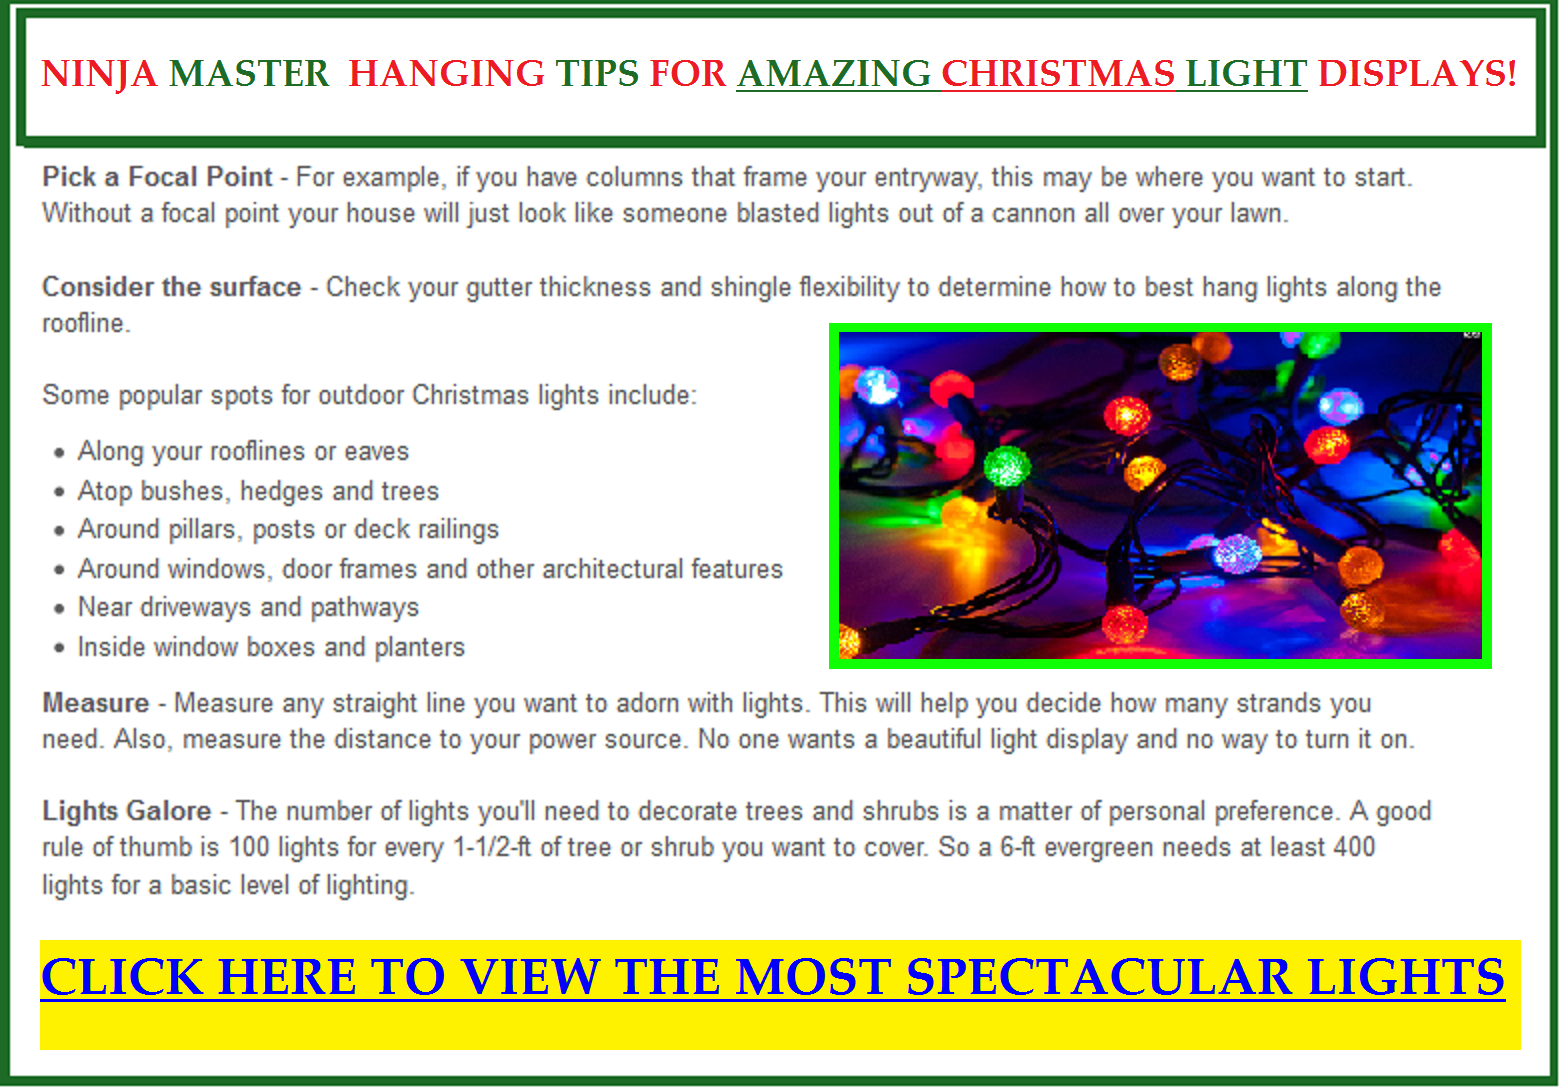 xmas light tips3